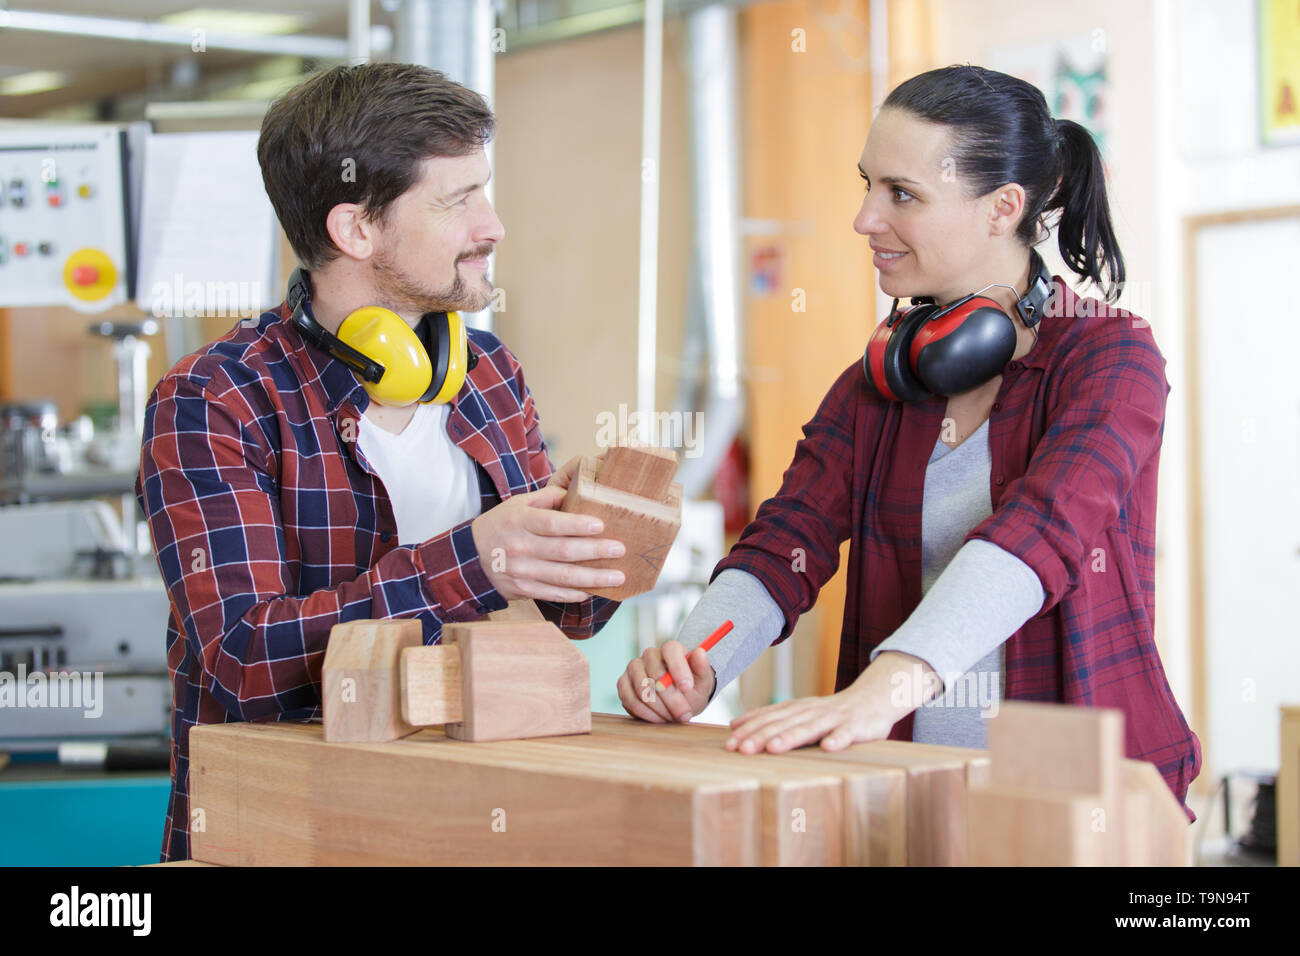 experienced carpenters in work clothes making a wooden furniture Stock Photo